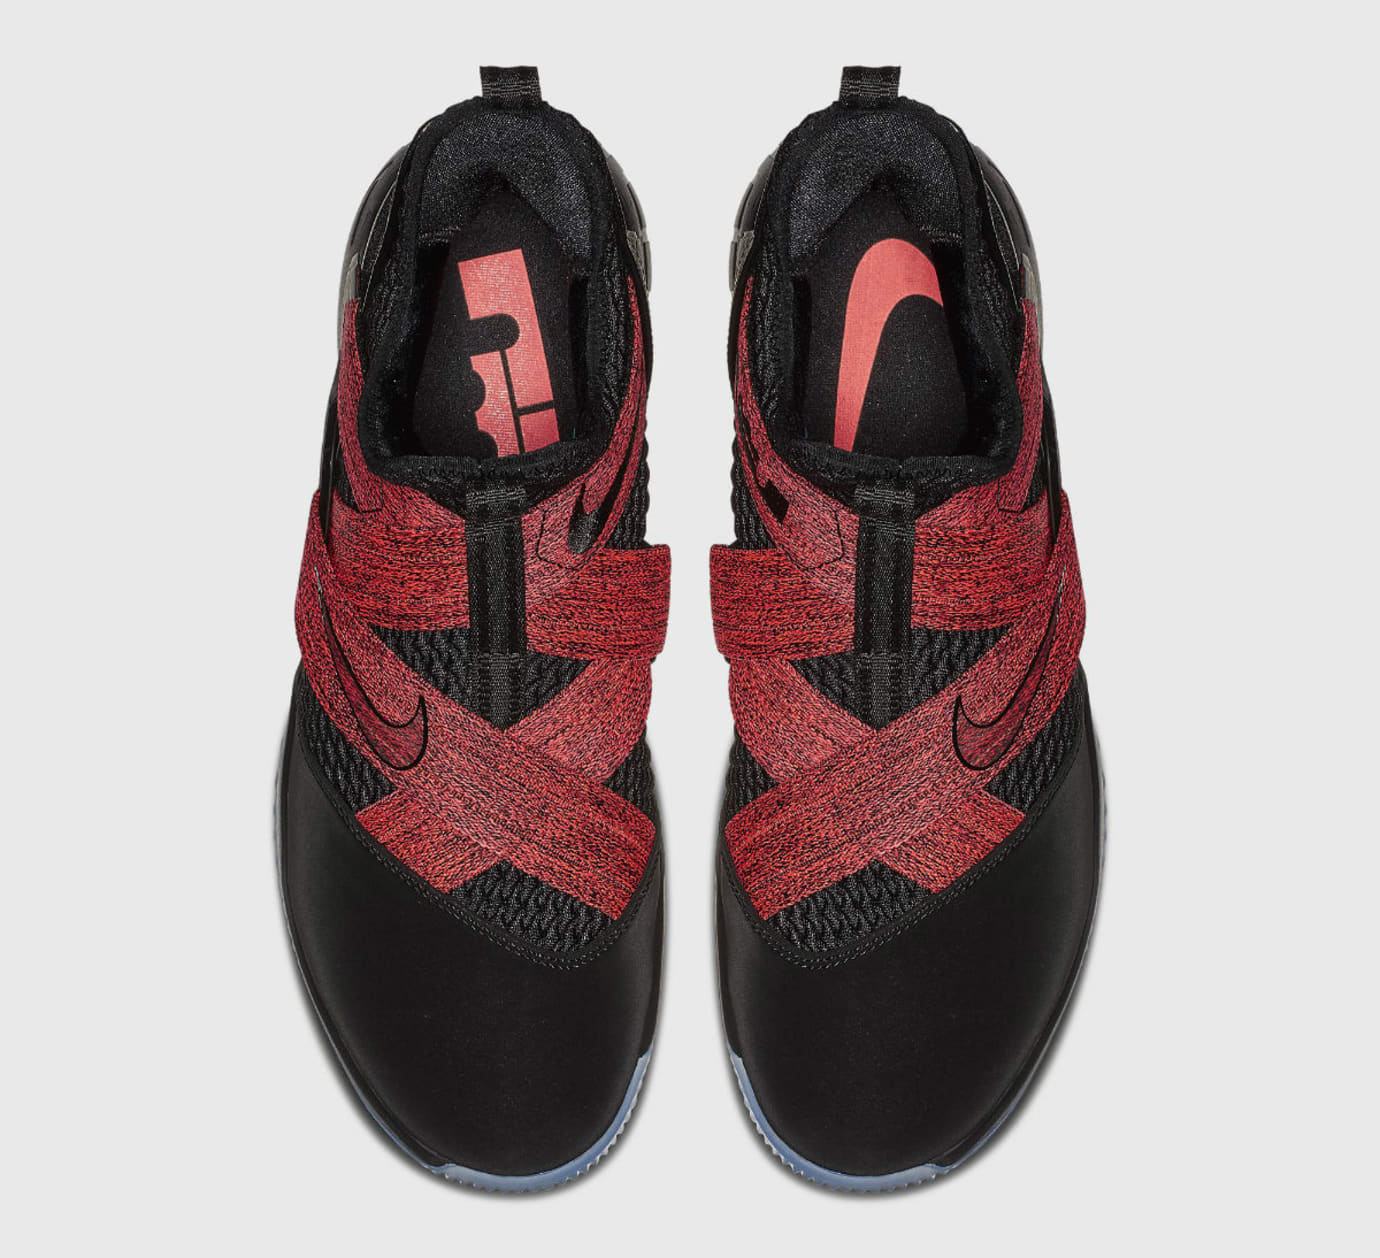 low priced d4336 3dd8c Image via Nike Nike LeBron Soldier 12 XII Bred Release Date AO2609-003 Top